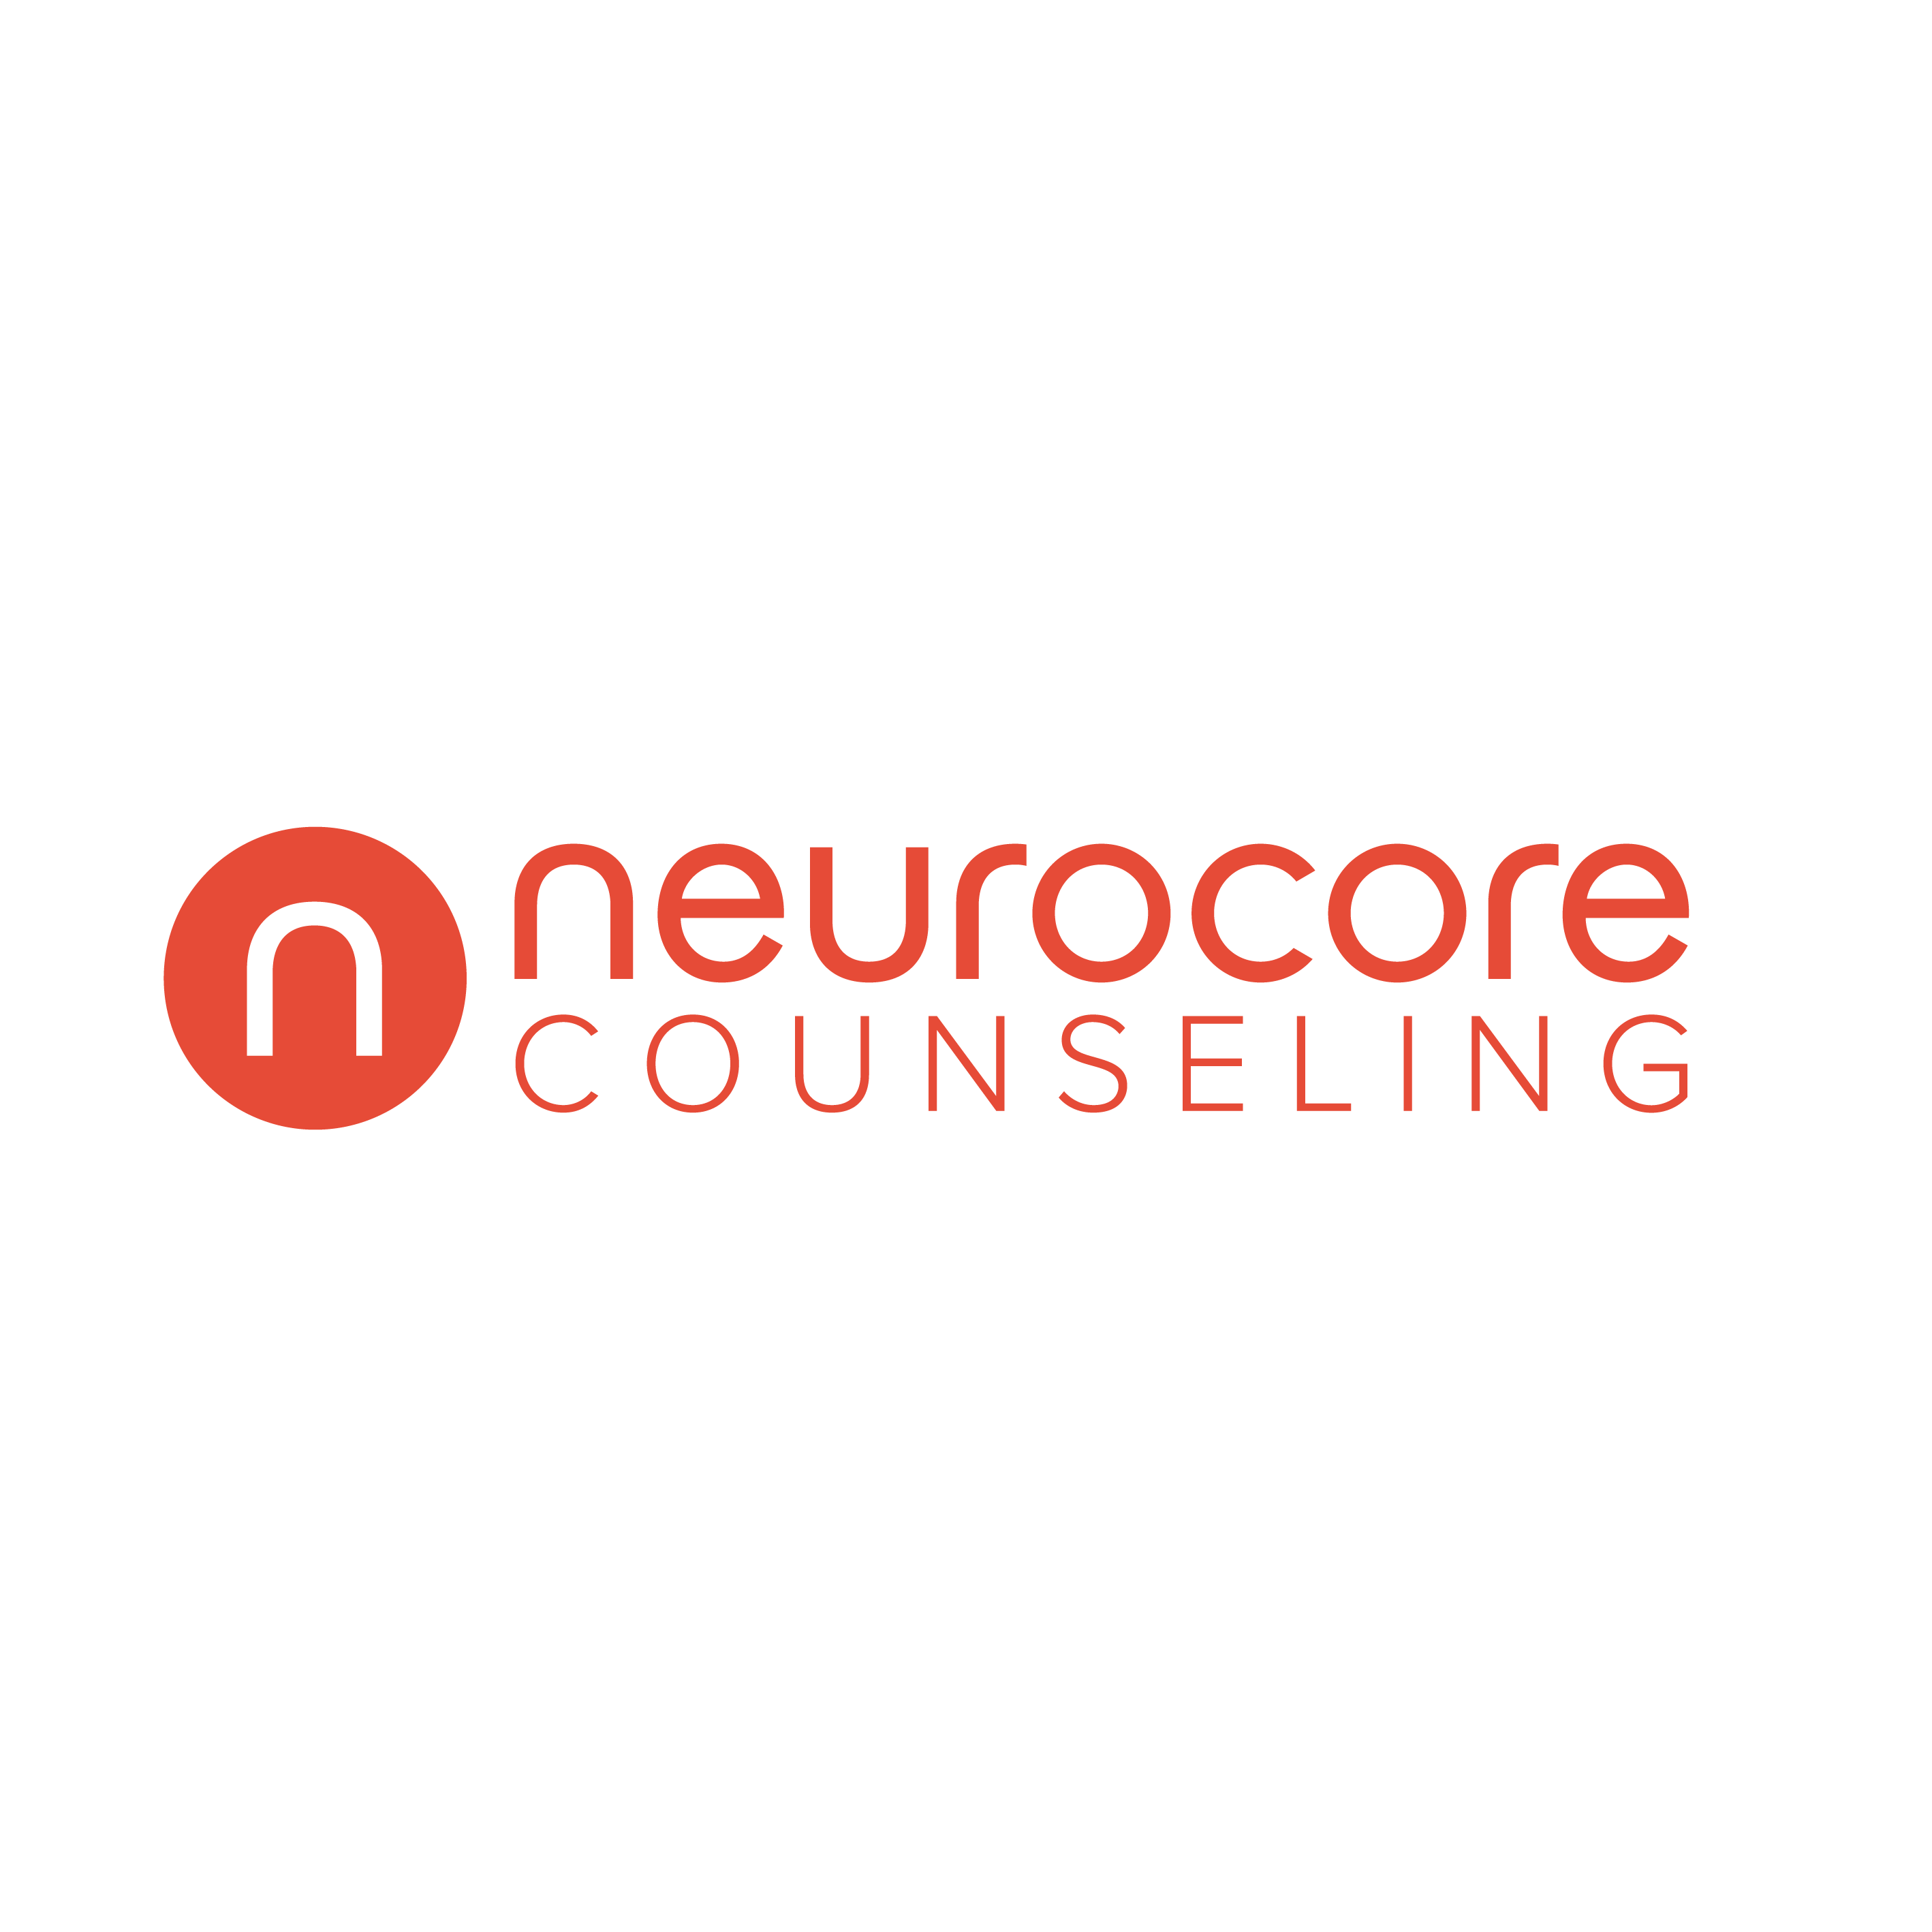 Neurocore Counseling West Bloomfield image 3